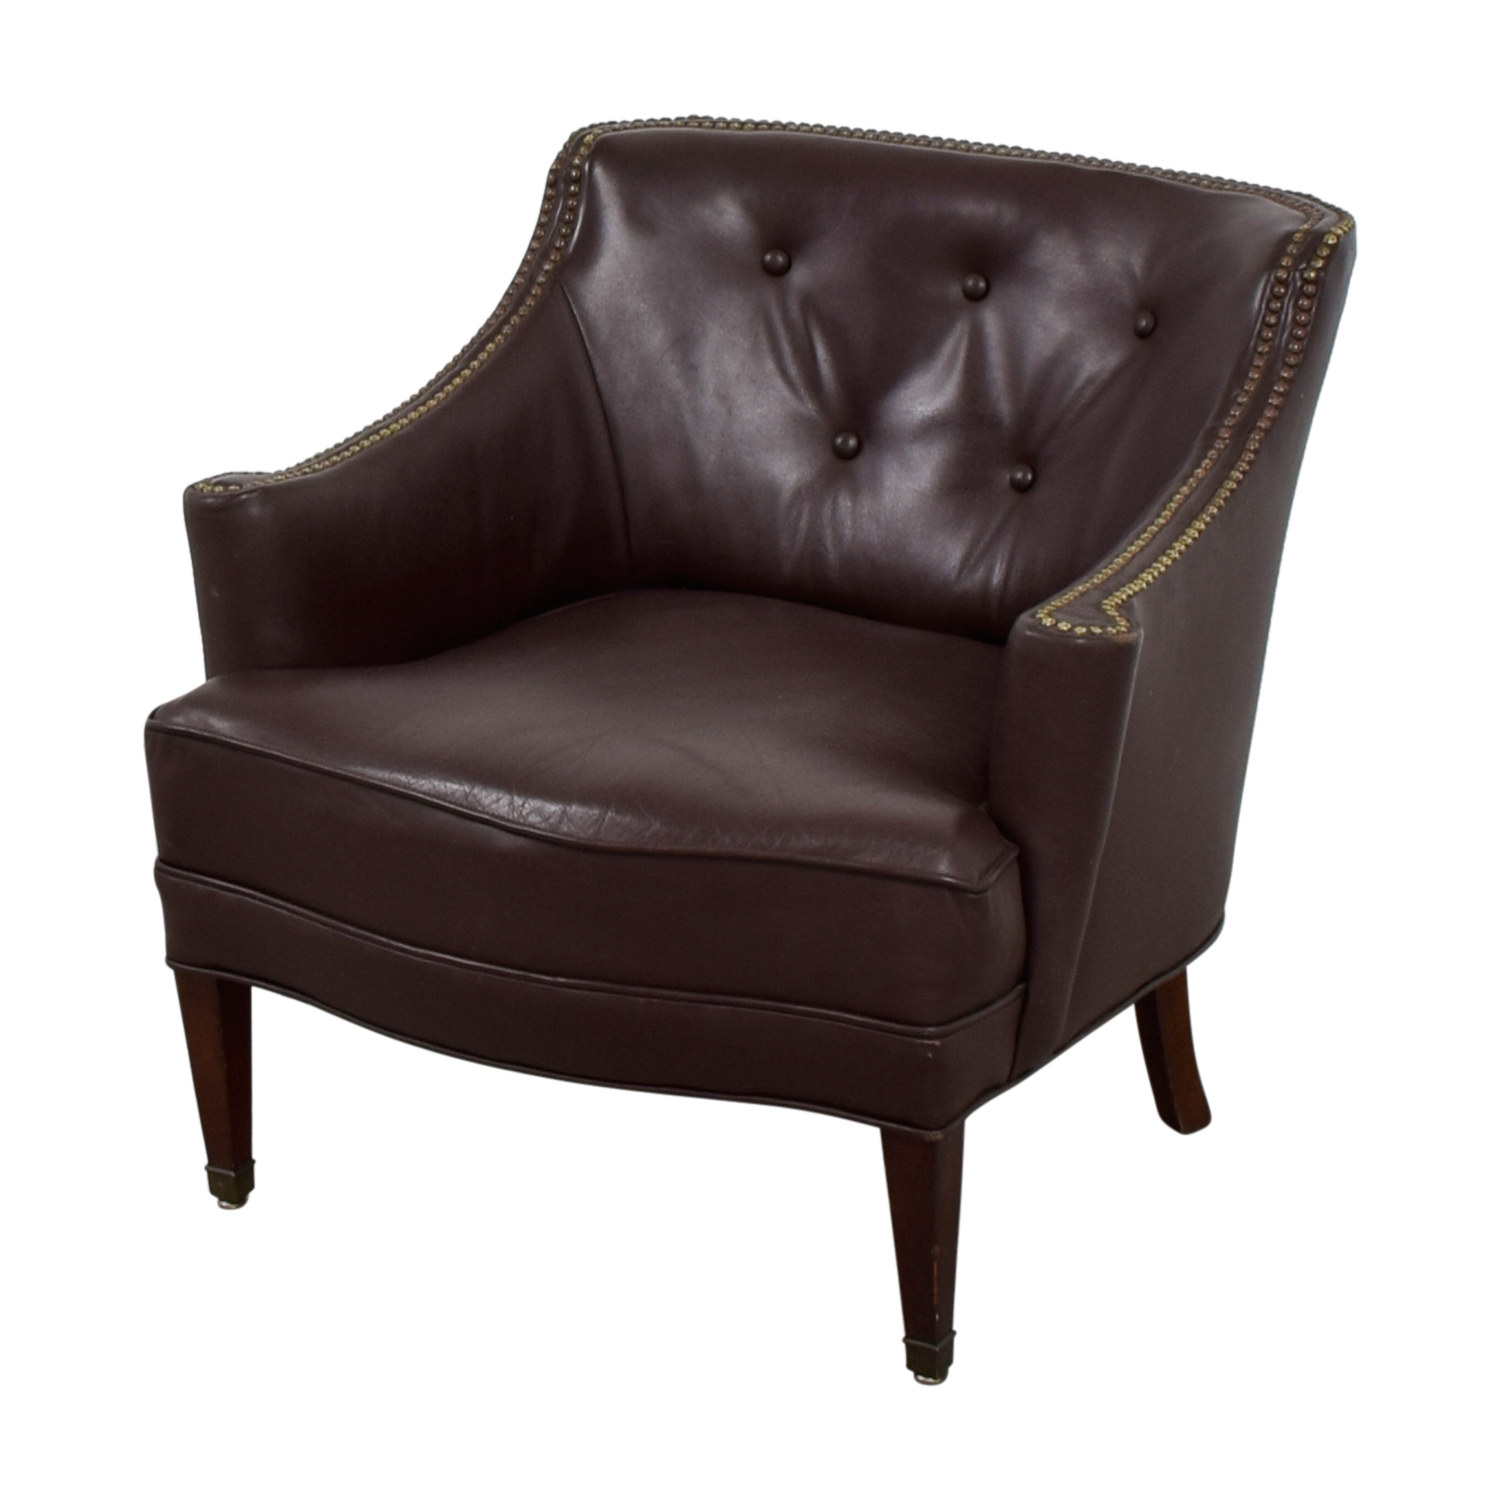 One Furniture: Pier 1 Imports Pier 1 Imports Brown Leather